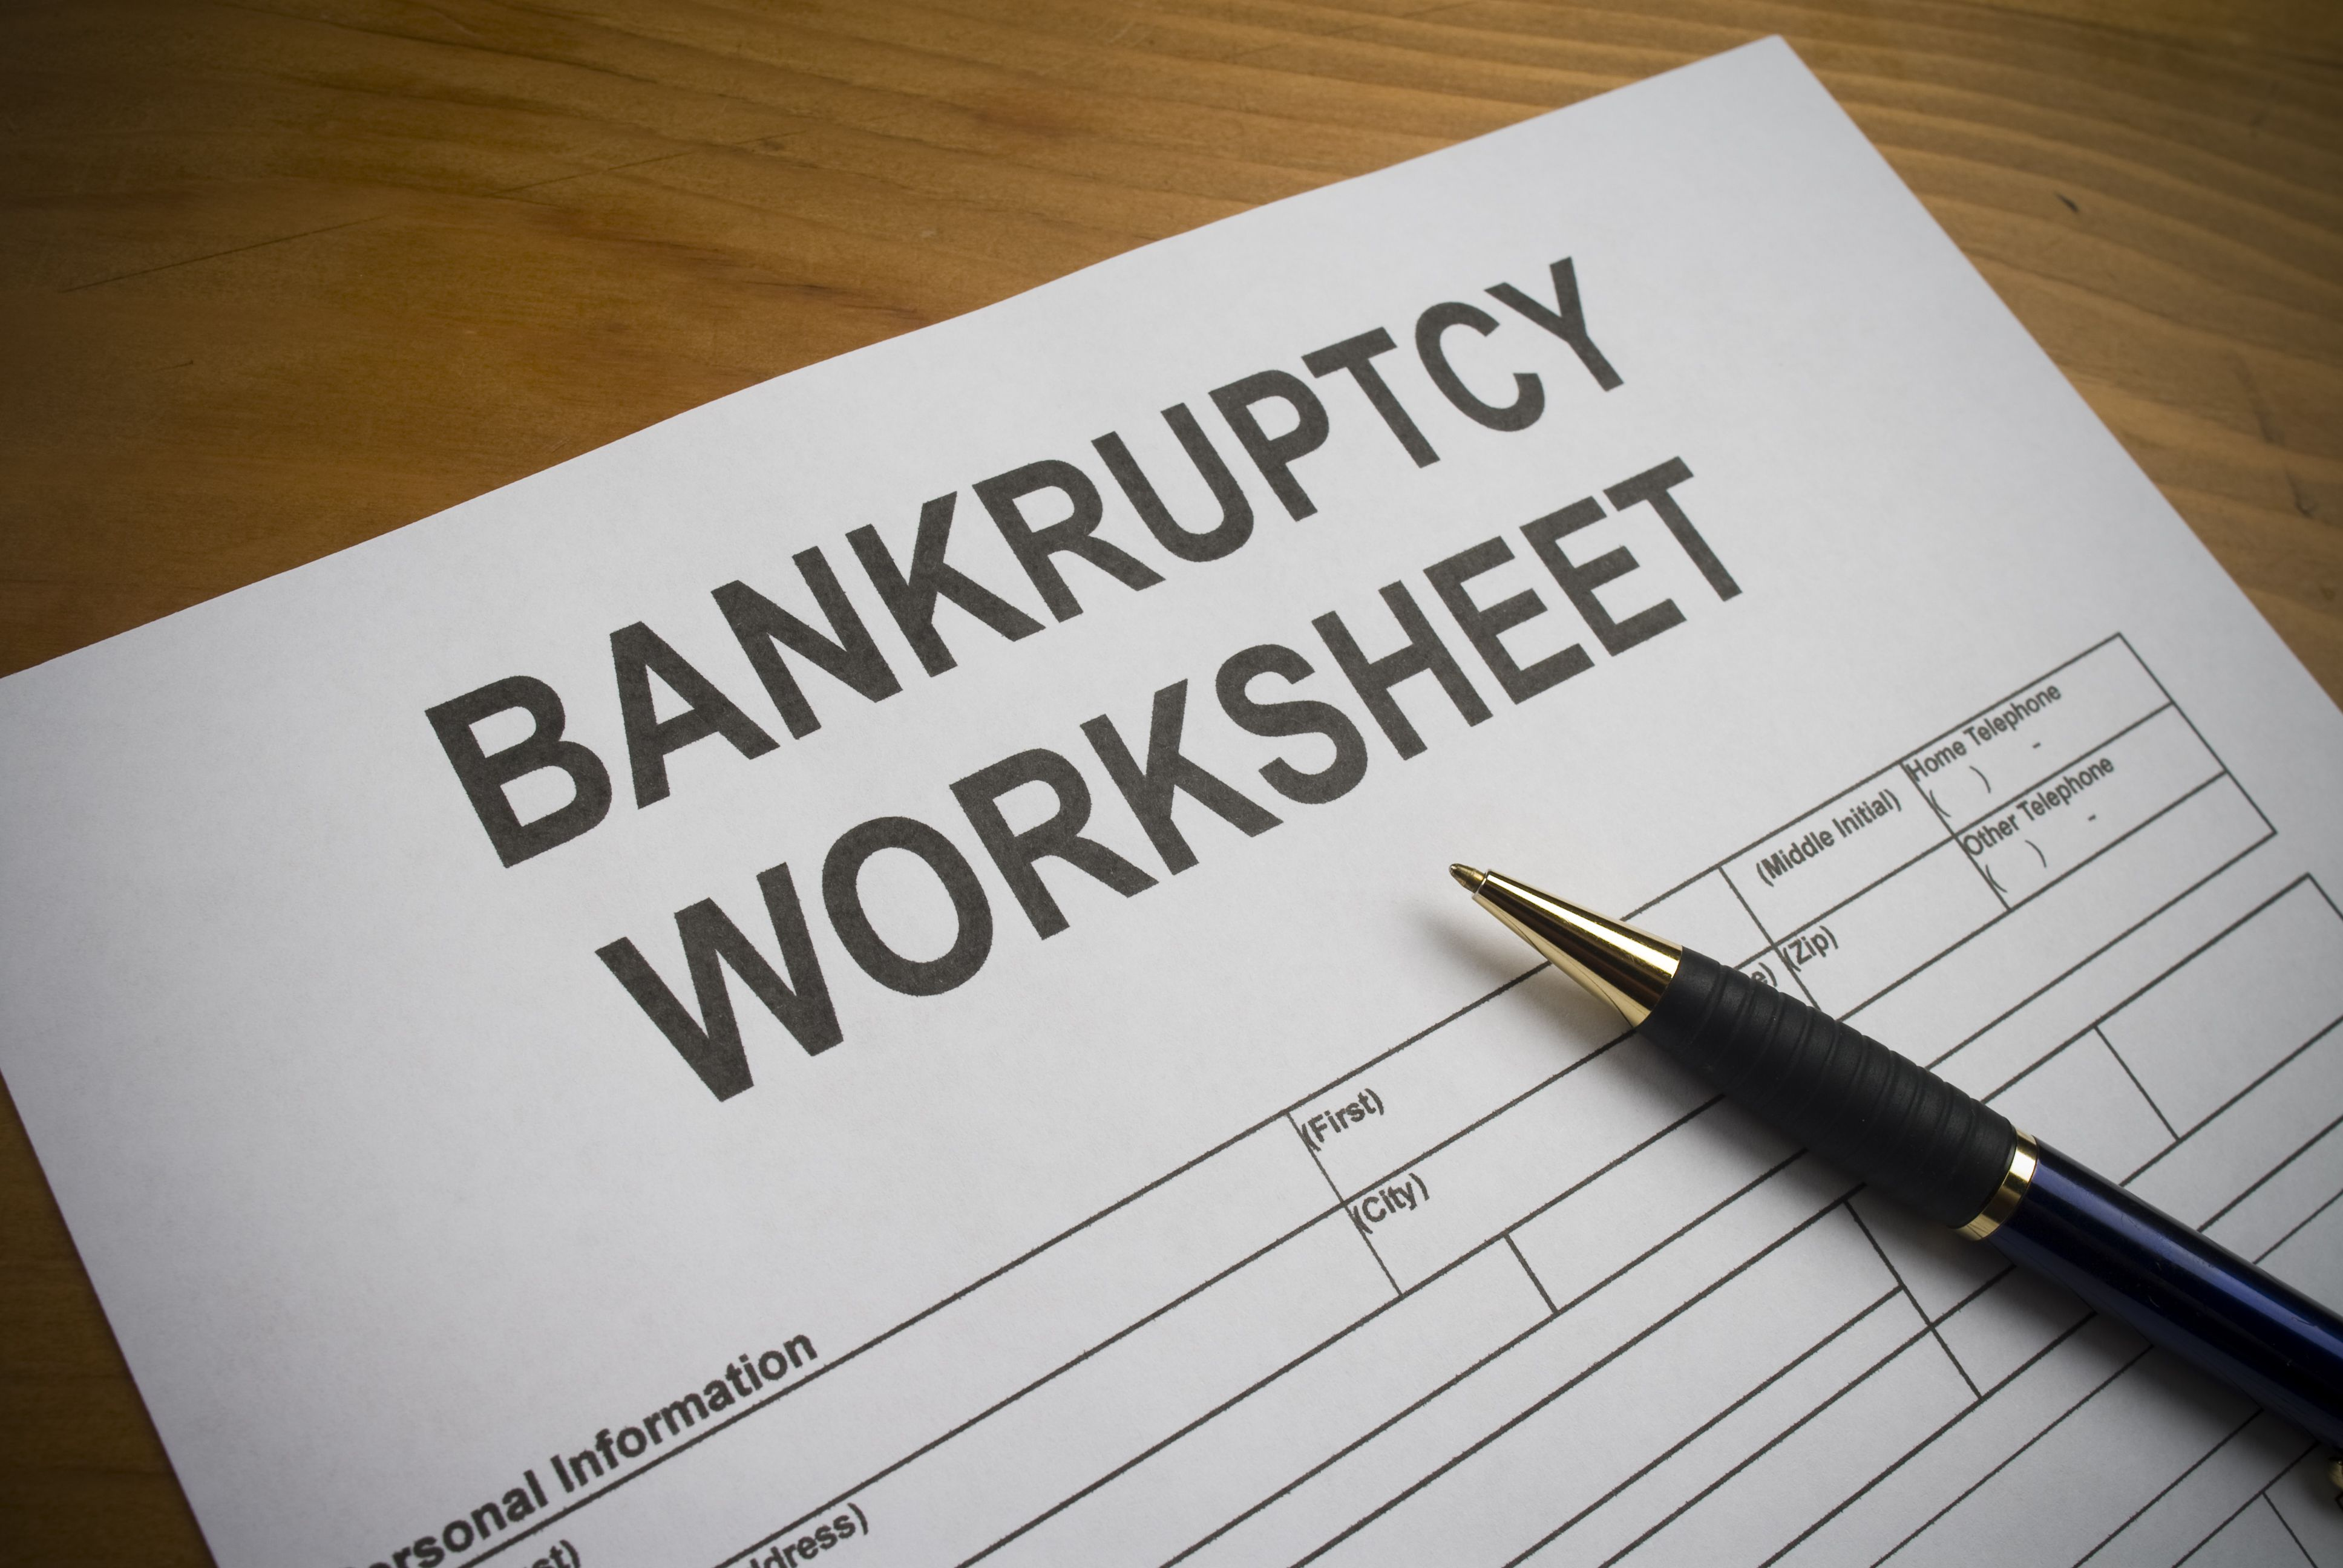 Overview of the Bankruptcy Statement of Financial Affairs – Bankruptcy Worksheet